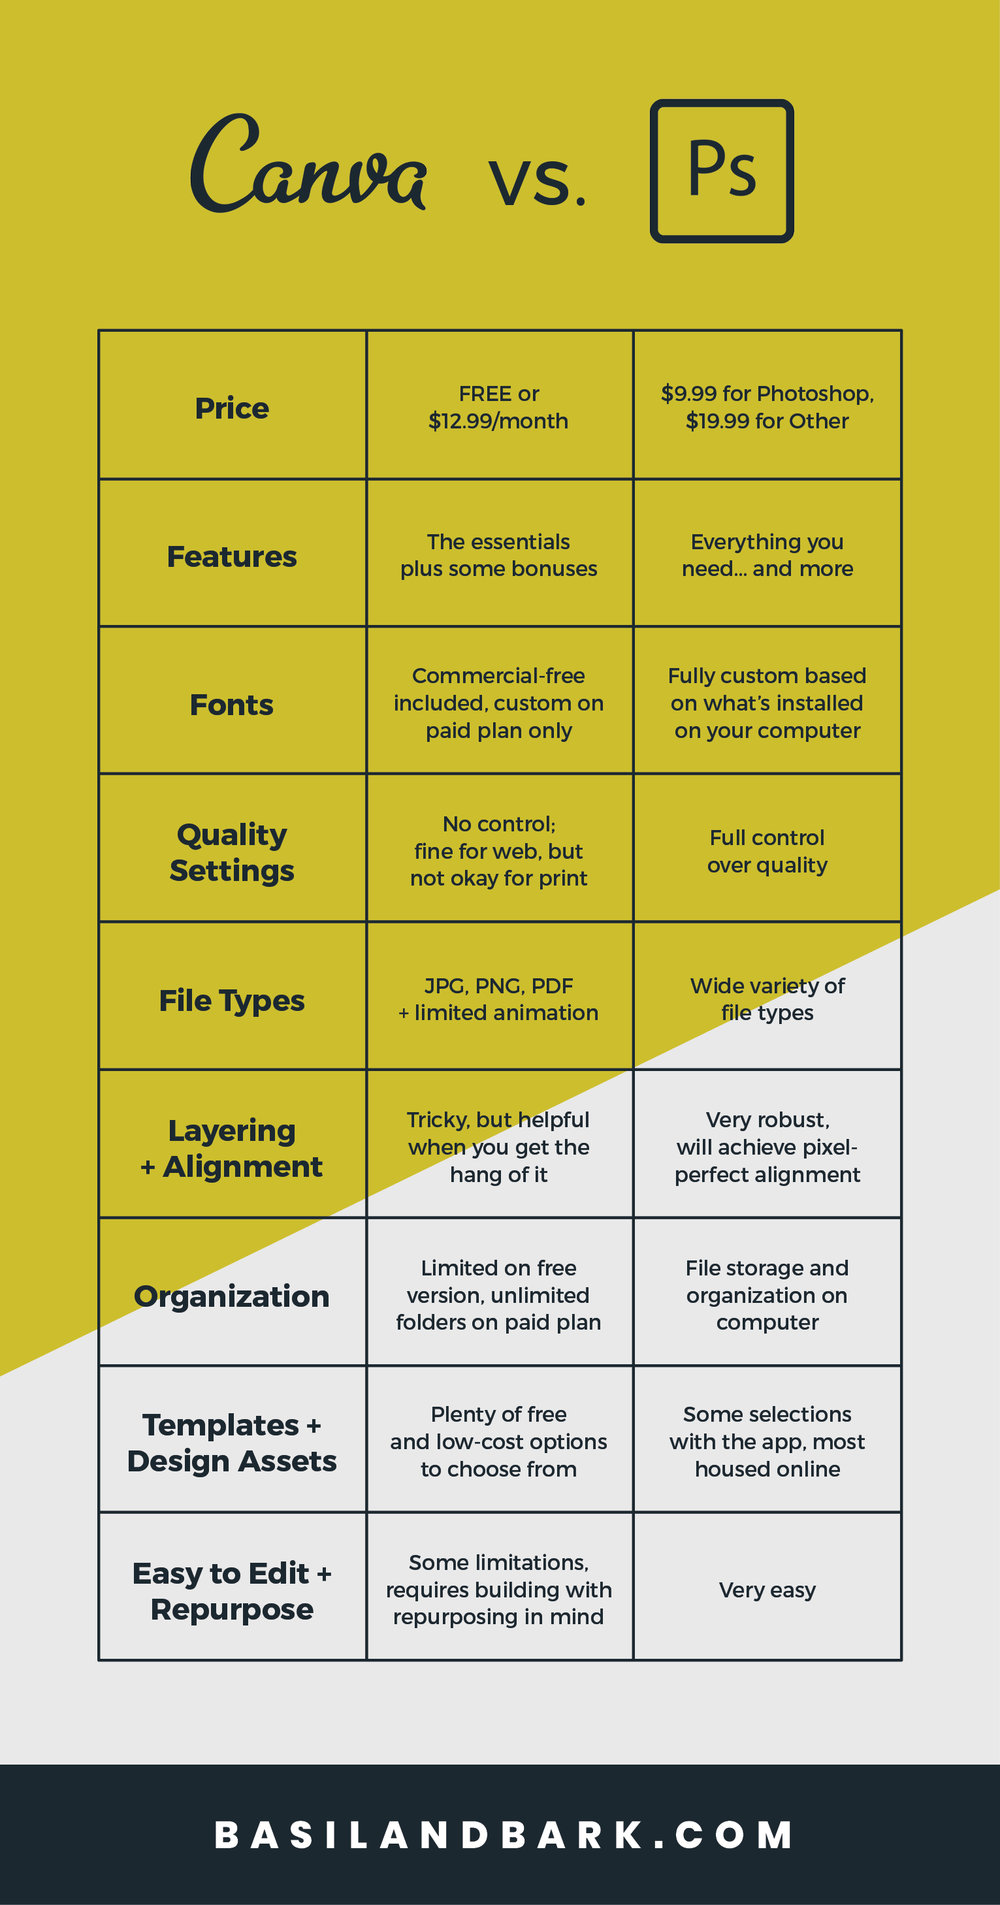 canva-vs-adobe-a-designers-perspective-comparison-chart.jpg